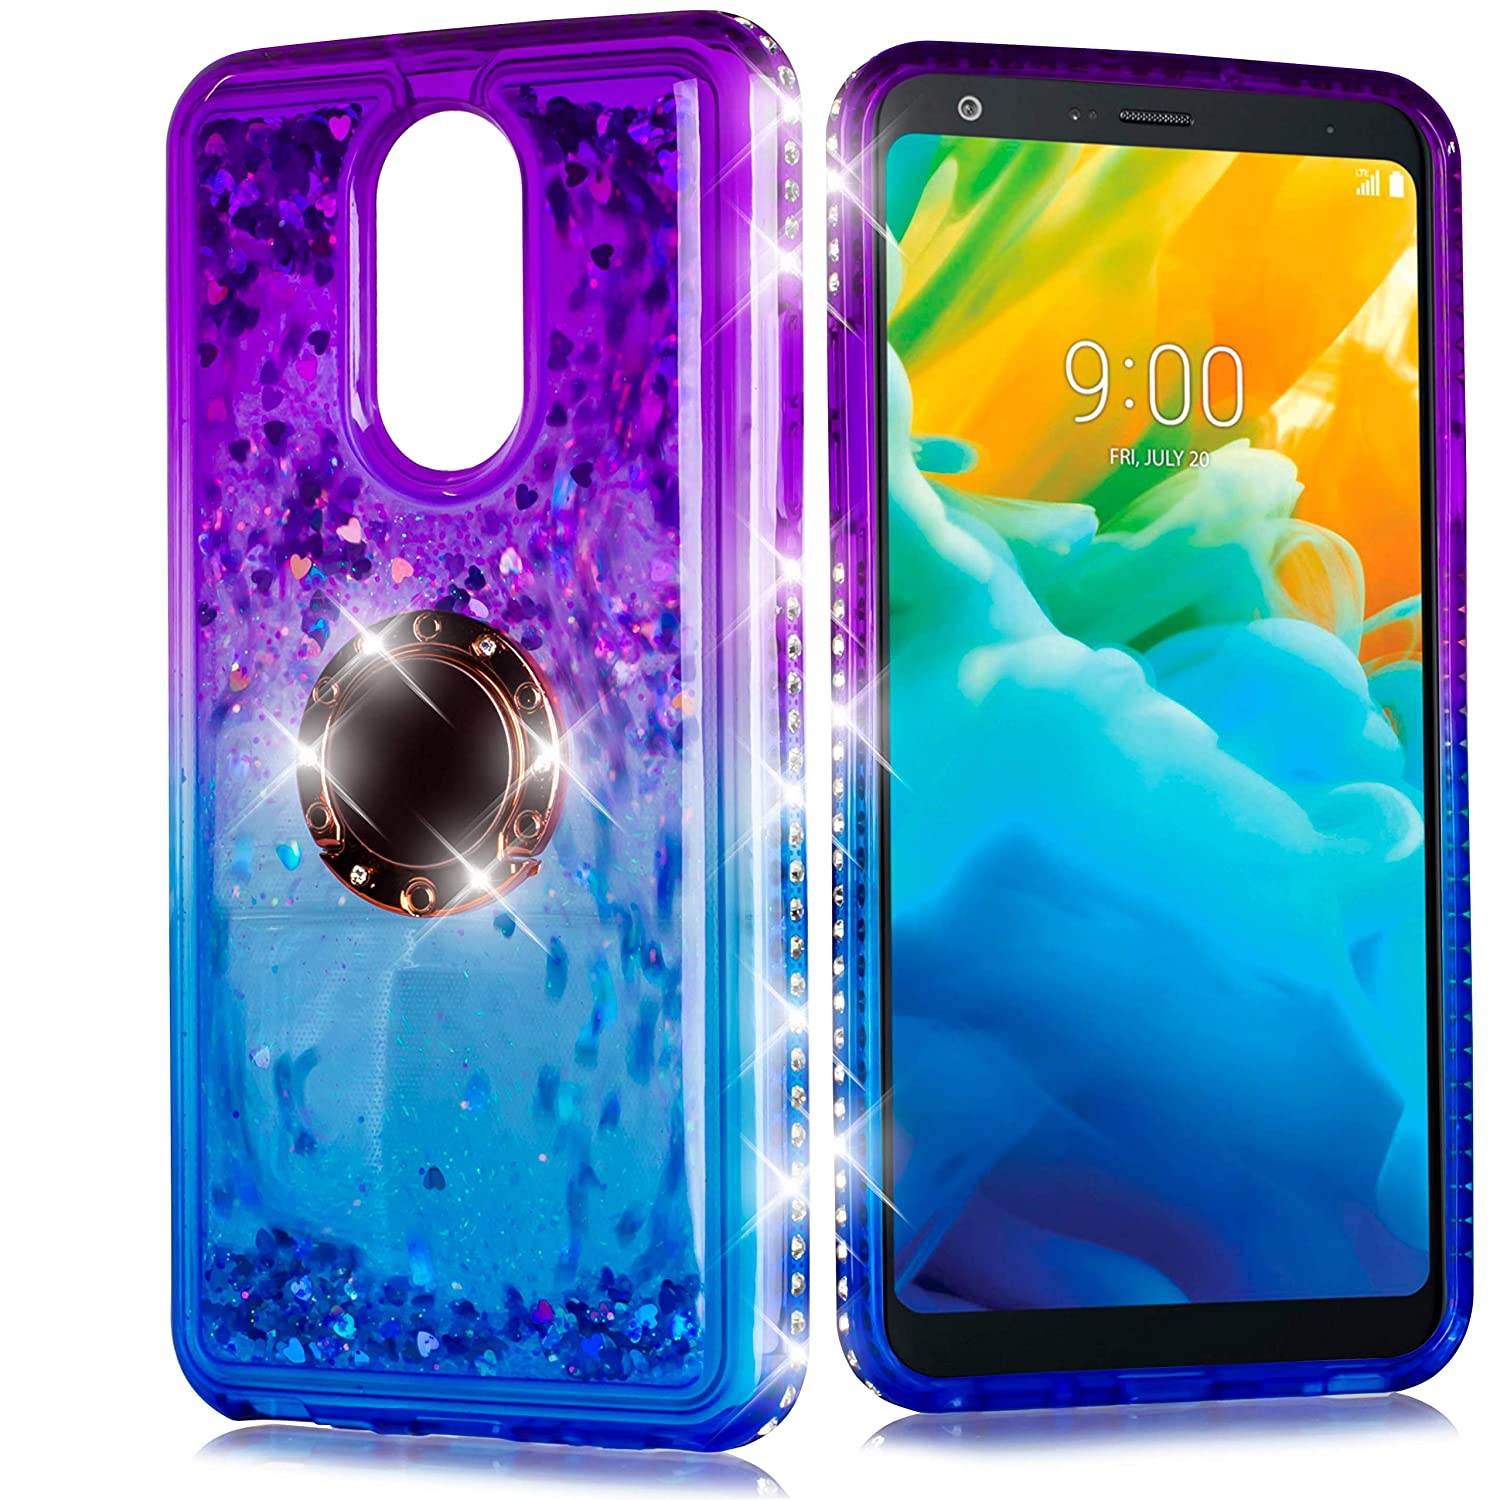 Compatible for LG STYLO 4/ Stylus 4/ LG Q STYLO 4 Q710 (Metro PCS, T-Mobile, Cricket) Cute Girls Motion Glitter Bling Sparkle Protective Soft Shock Proof TPU Womens Shiny Ring Case W/Screen! (Blue)